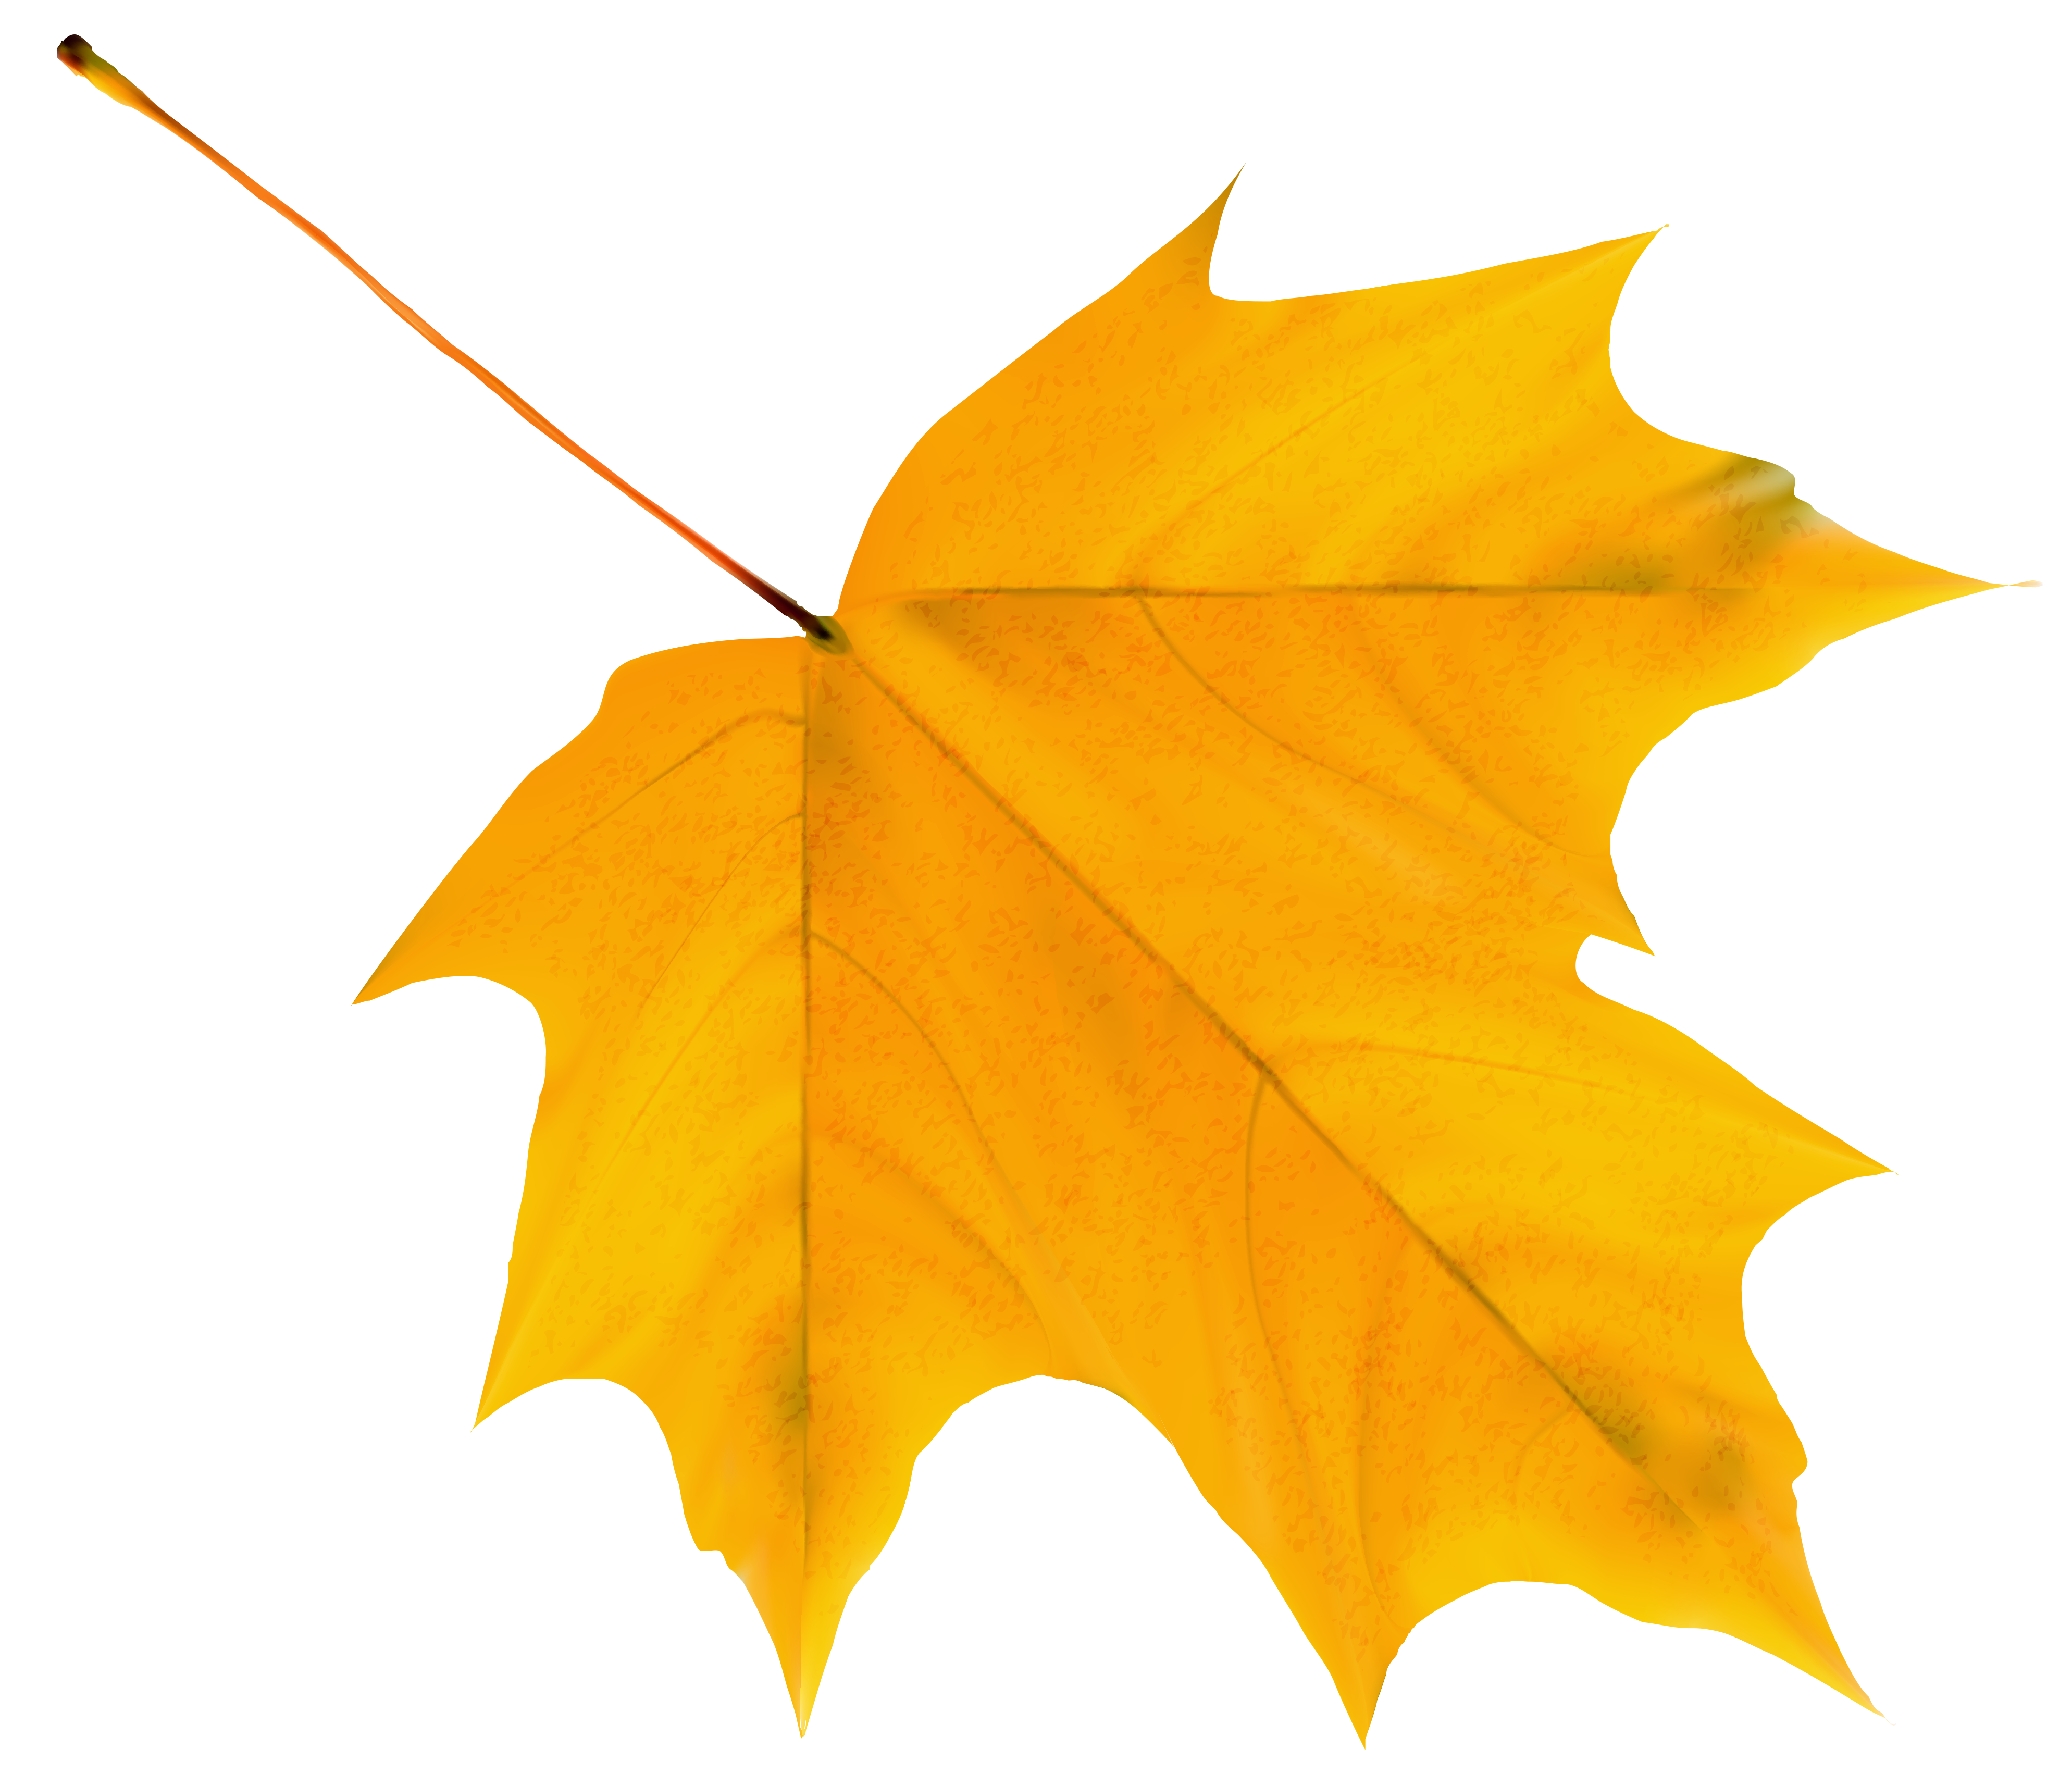 Yellow Autumn Leaf PNG Clipart Image | Gallery Yopriceville - High ...